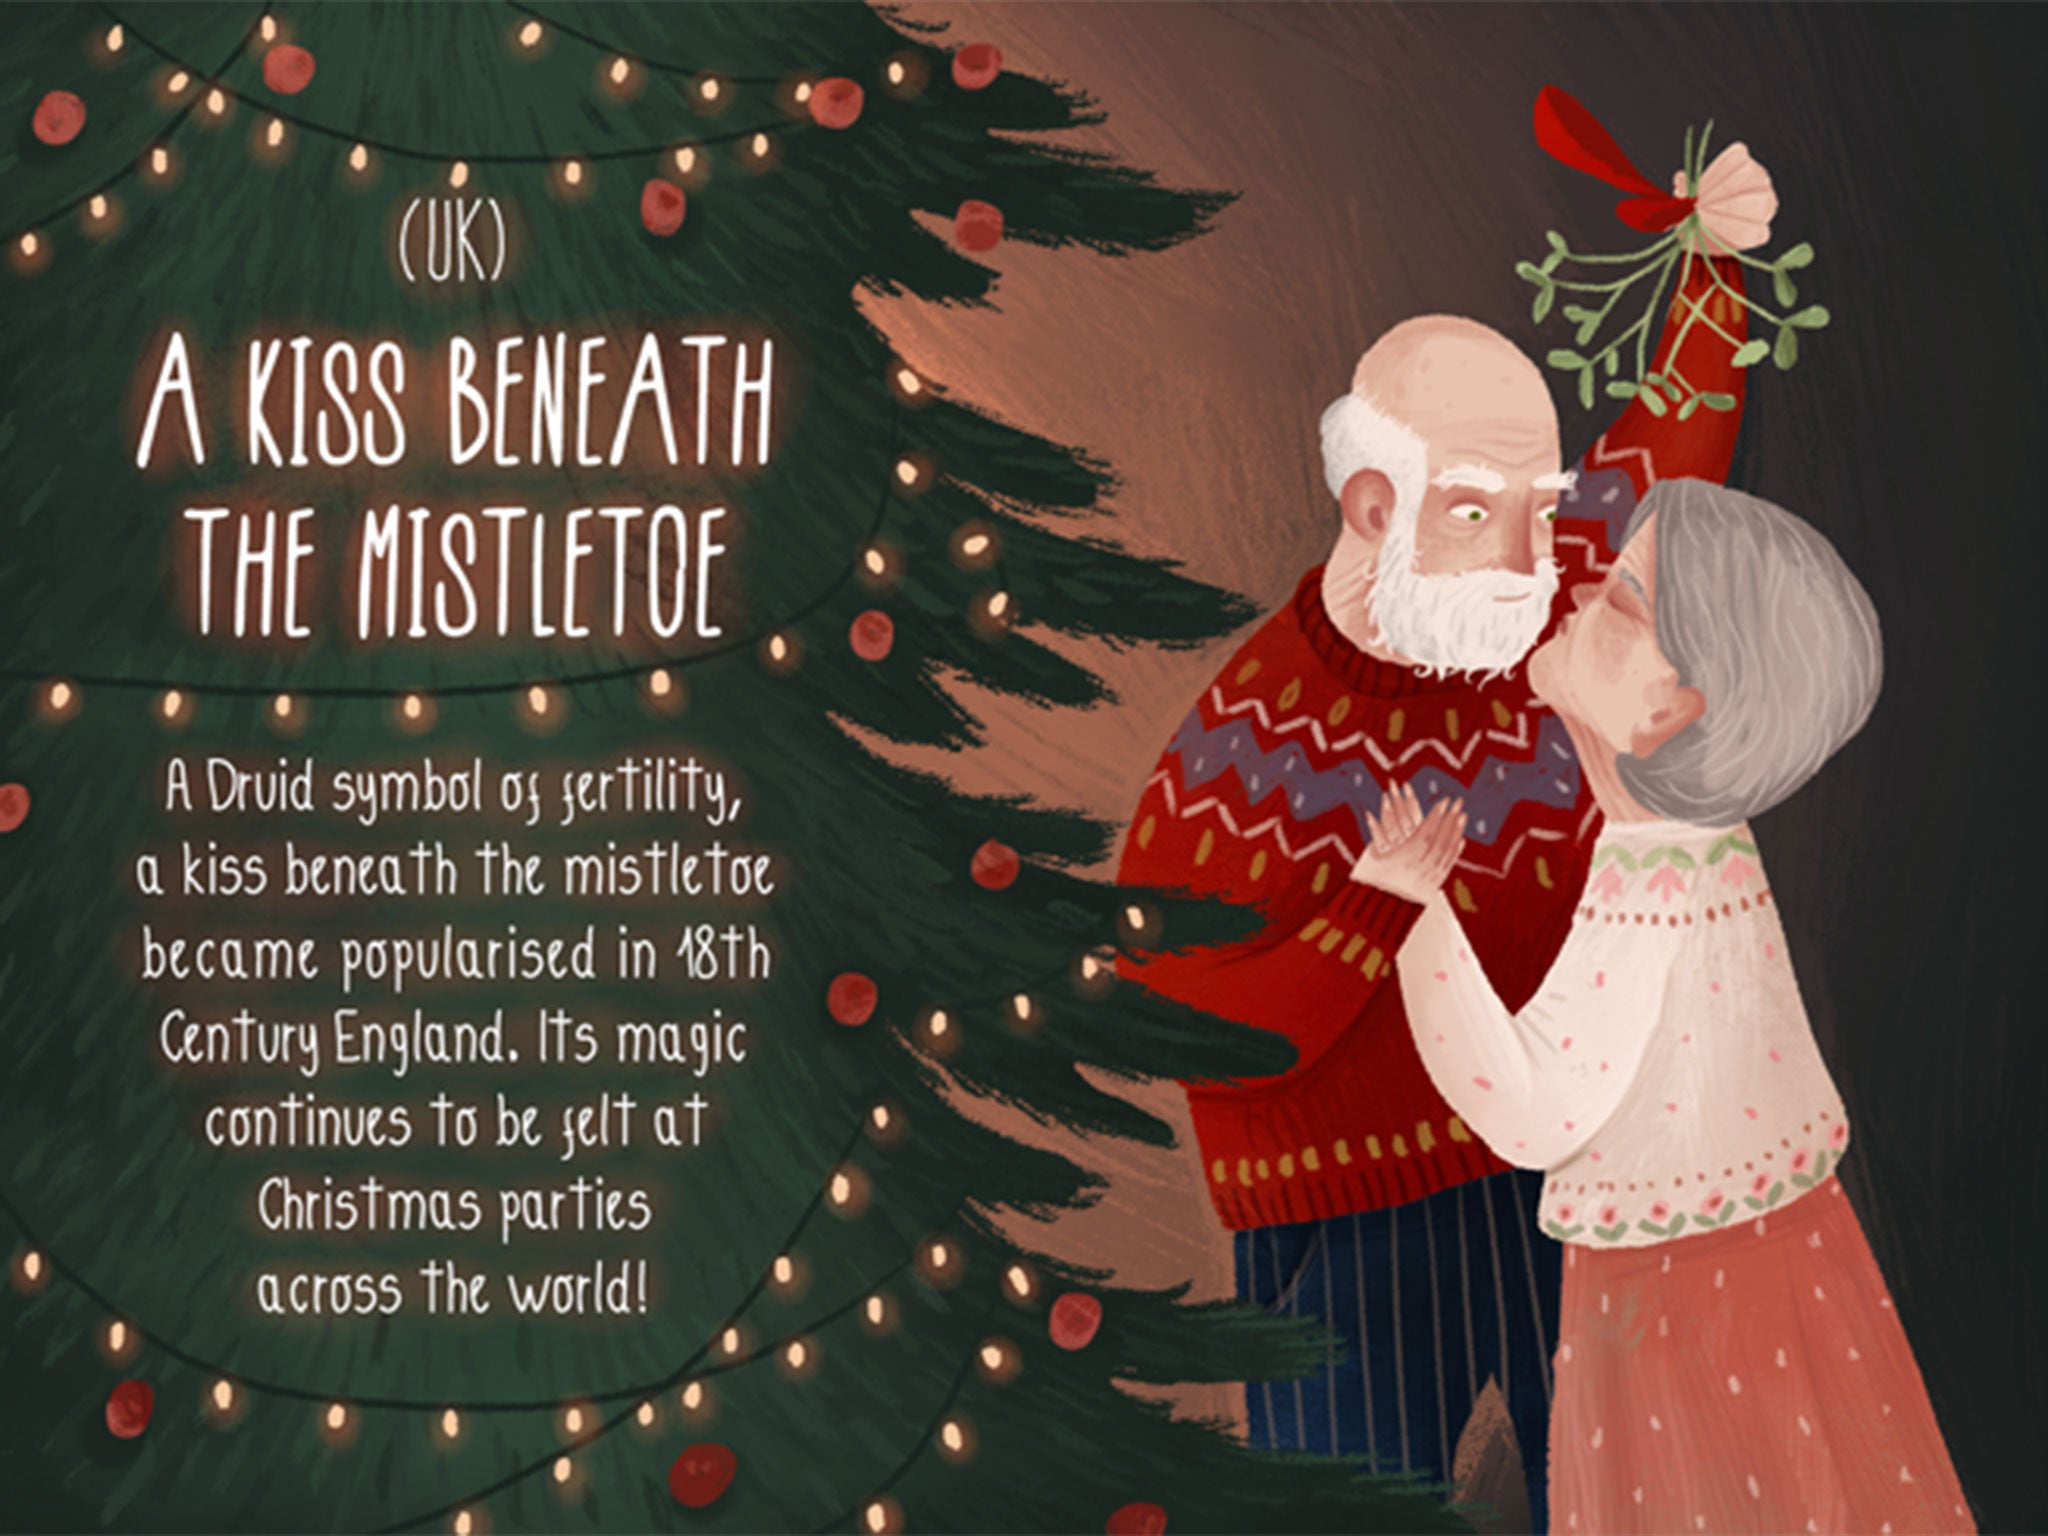 Romantic Christmas traditions from around the world in 12 illustrations | Love & Sex | Lifestyle ...